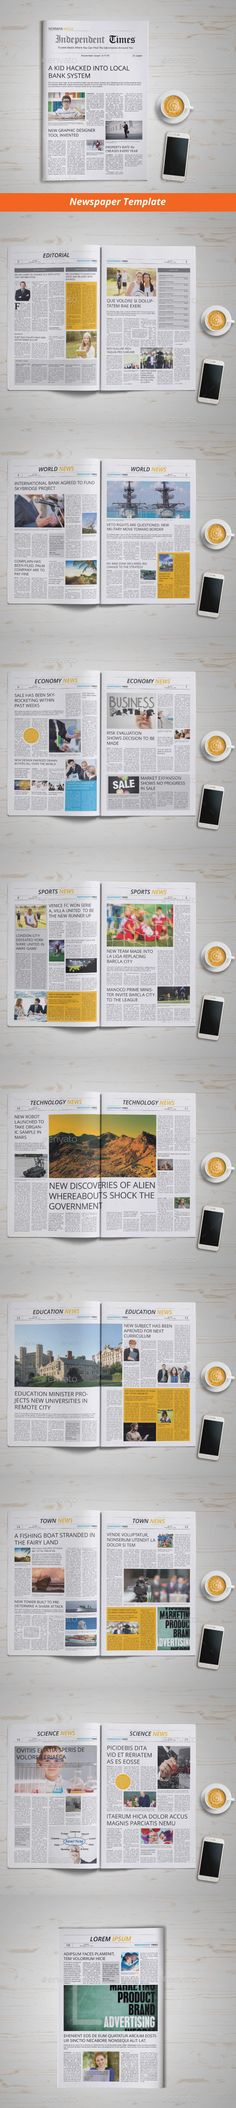 Newspaper Template 18 Pages InDesign INDD #design Download: http://graphicriver.net/item/newspaper-template-18-pages/13563800?ref=ksioks